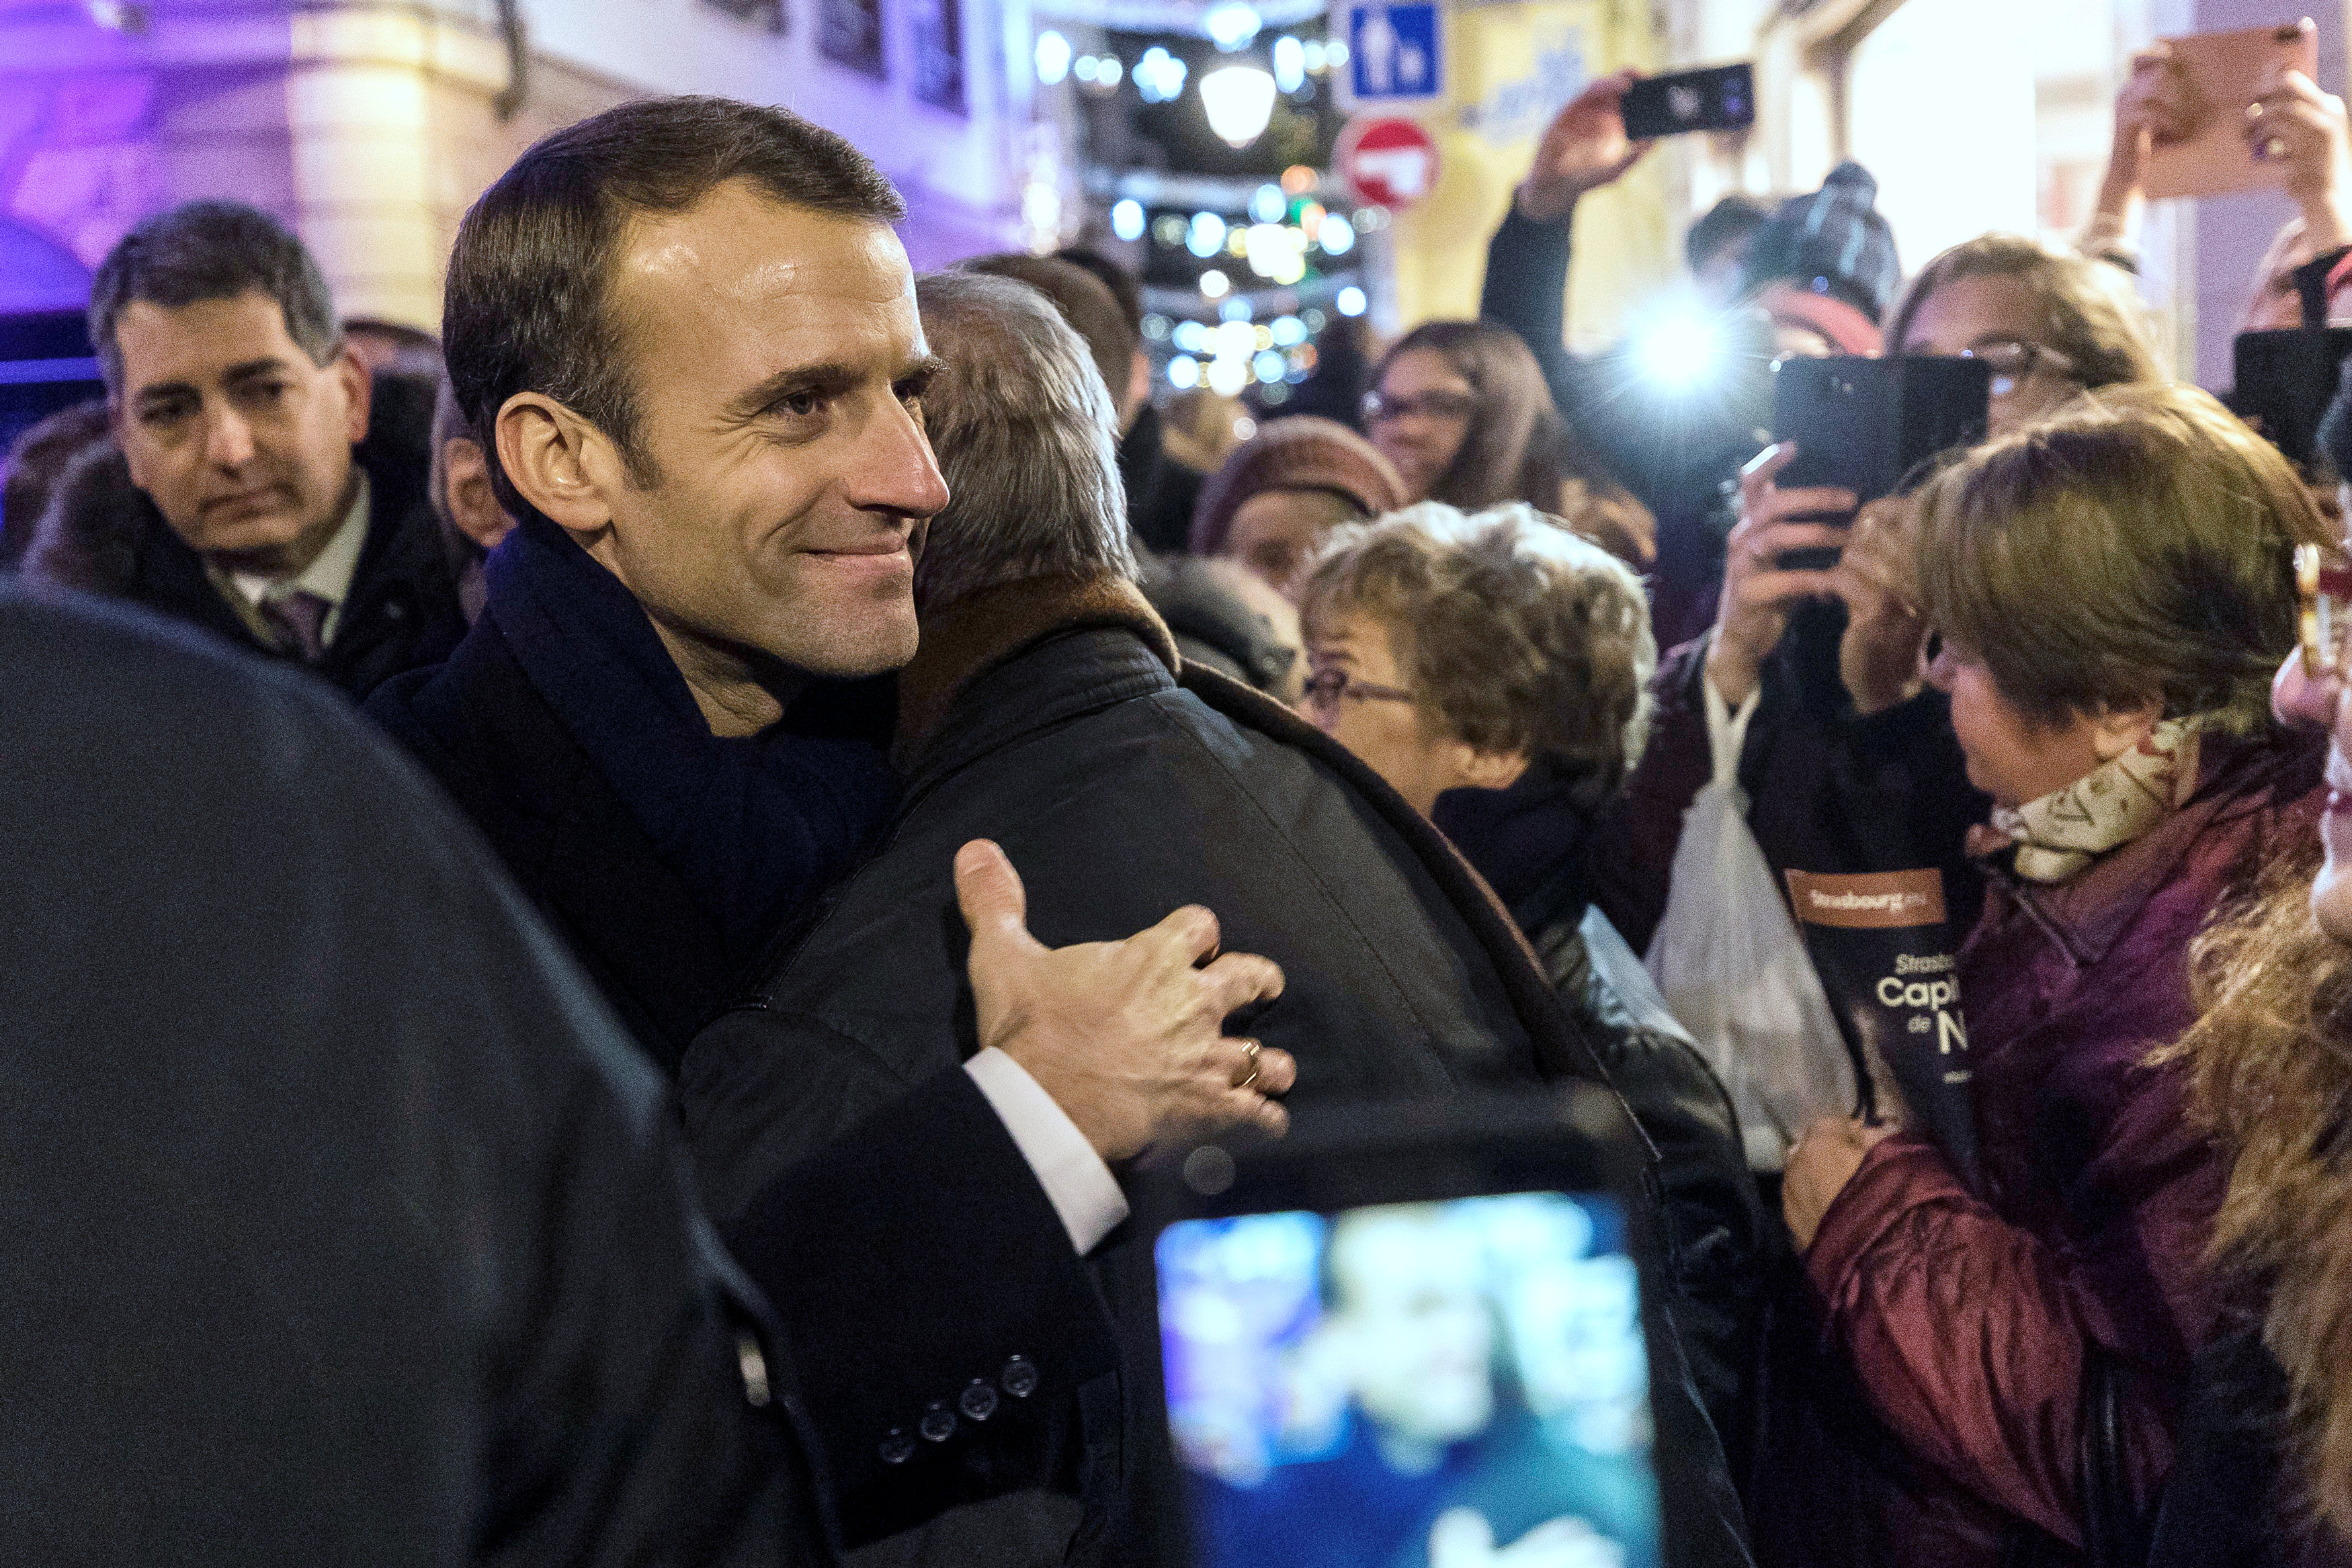 2018-12-14T202159Z_161702317_RC12D23741A0_RTRMADP_3_FRANCE-SECURITY-MACRON-CHRISTMAS